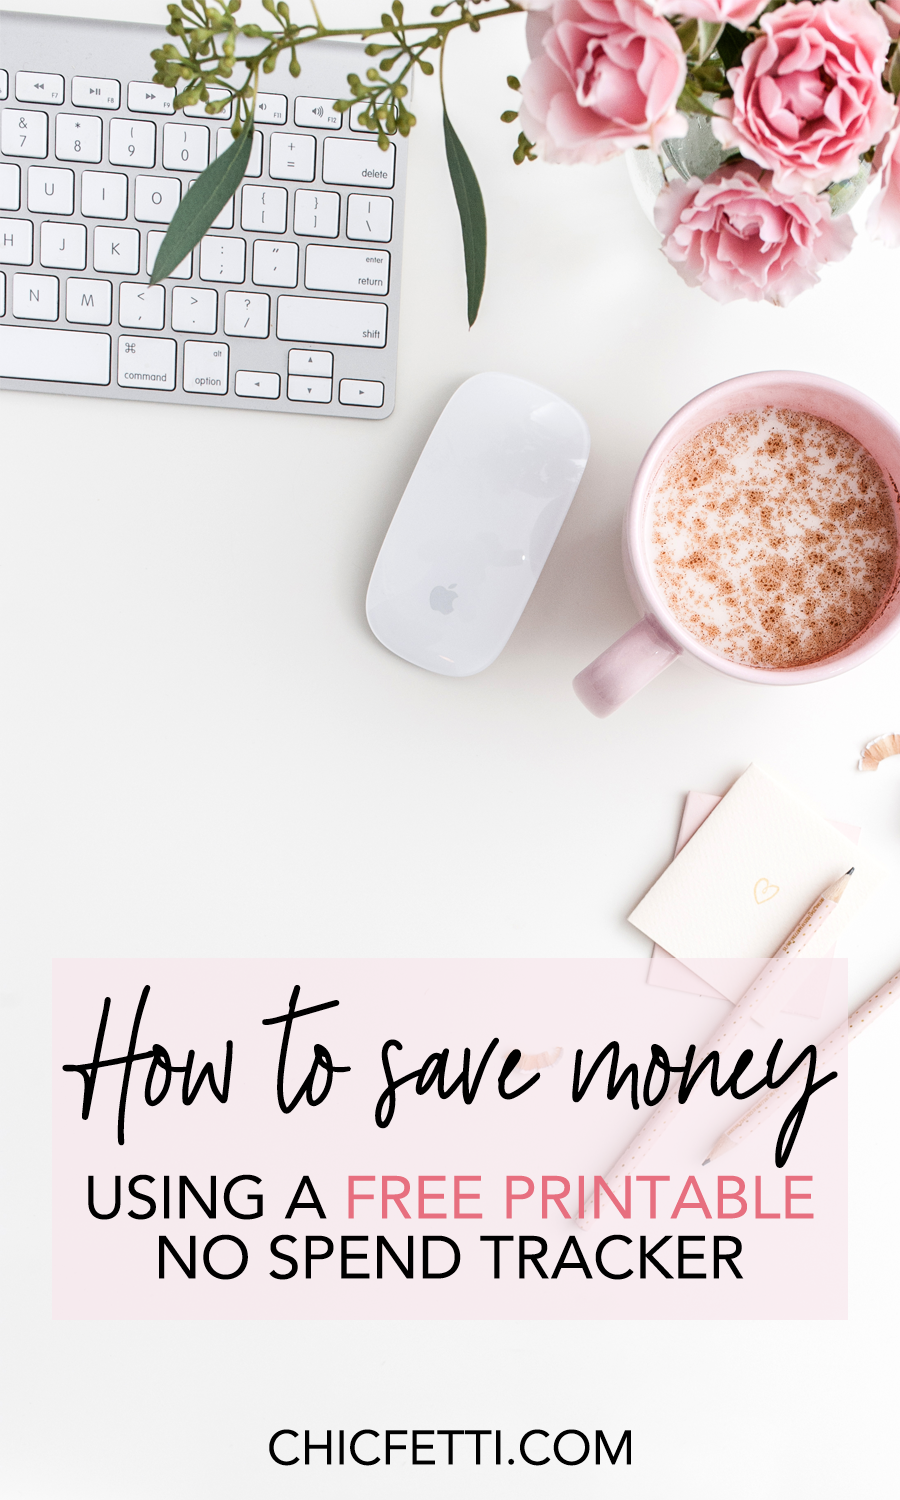 How to Save Money by Using a No Spen Tracker